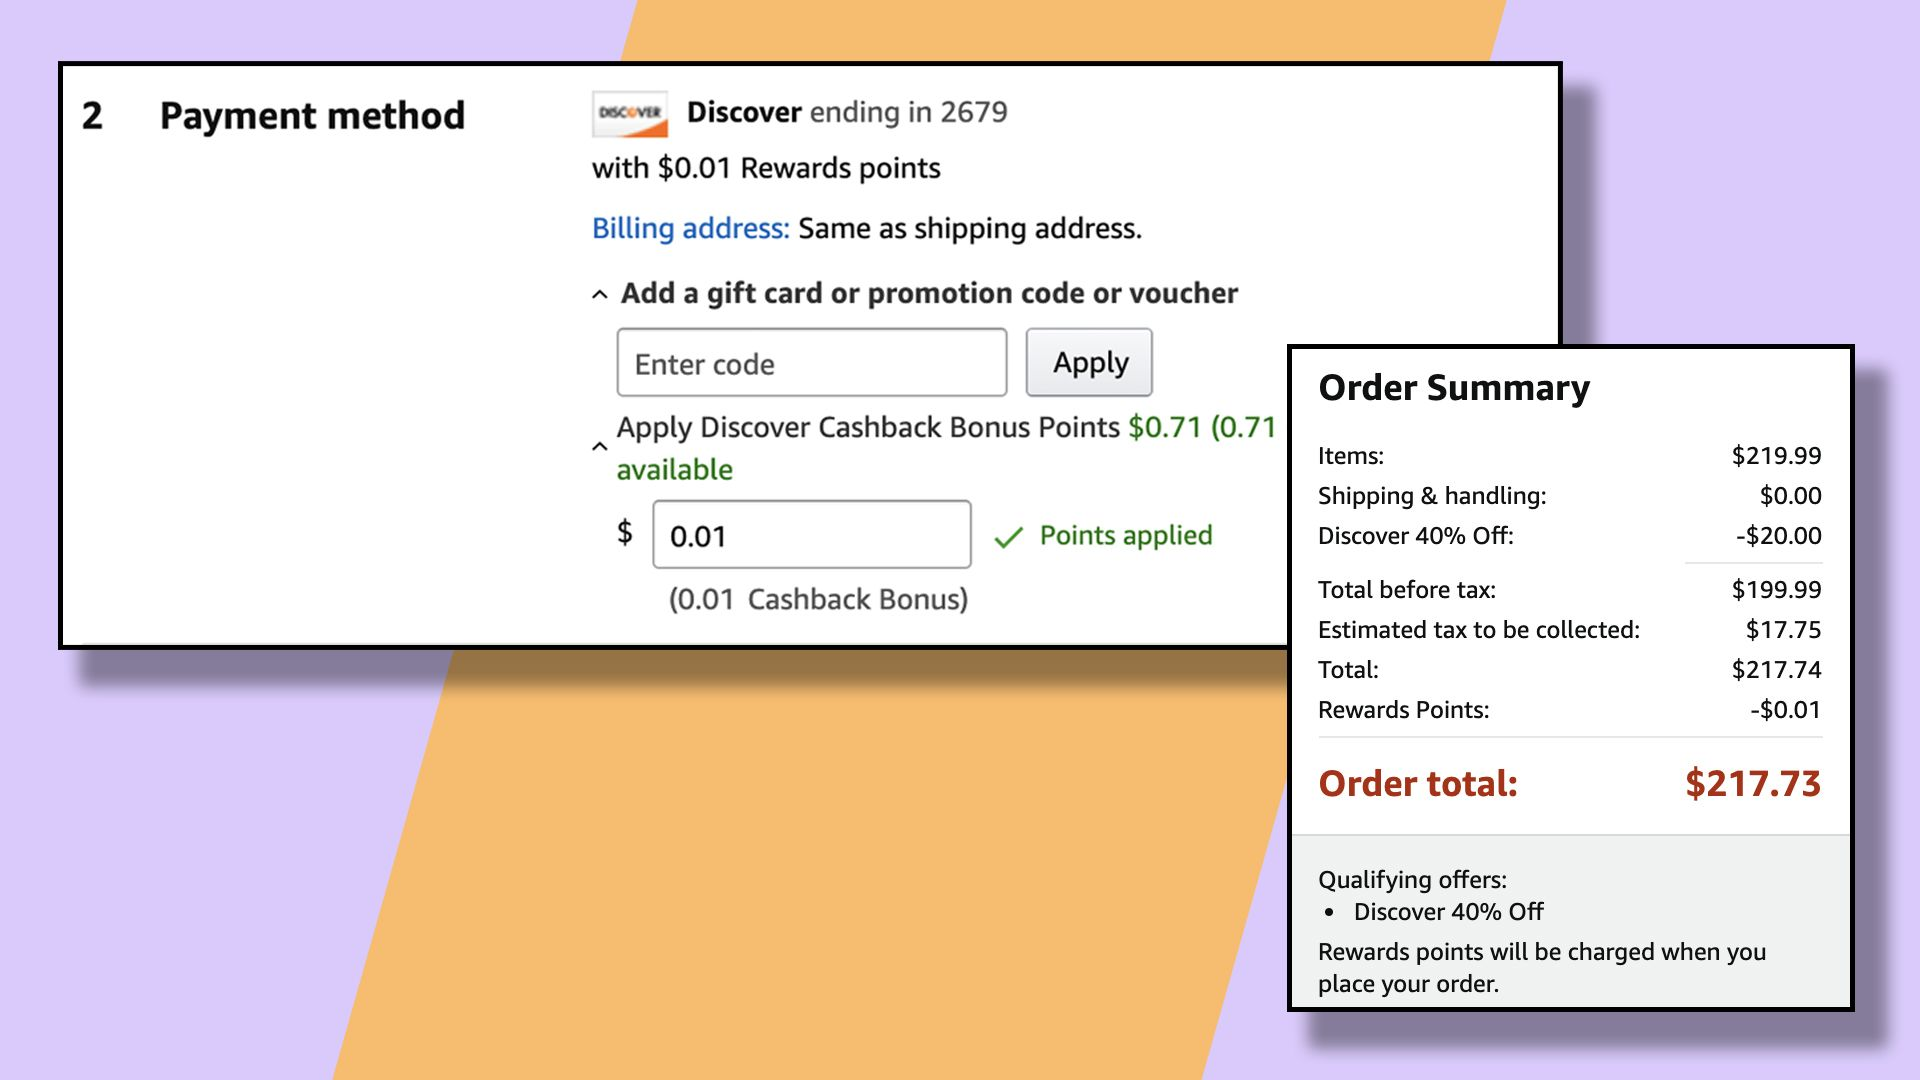 Save up to 9% at Amazon with Discover credit cards CNN Underscored